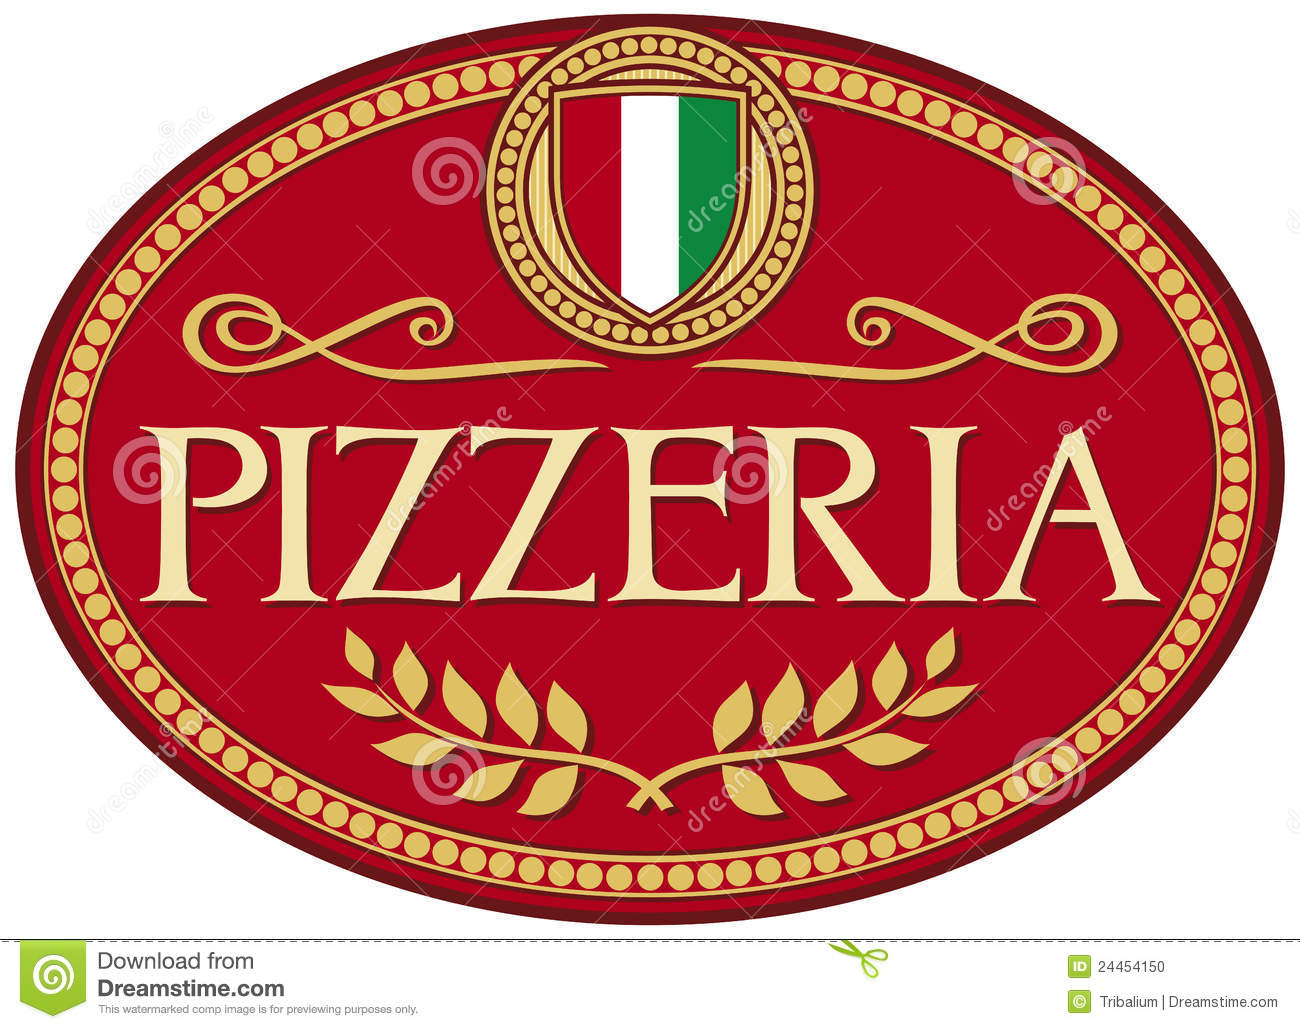 pizzeria label design stock vector  illustration of isolated